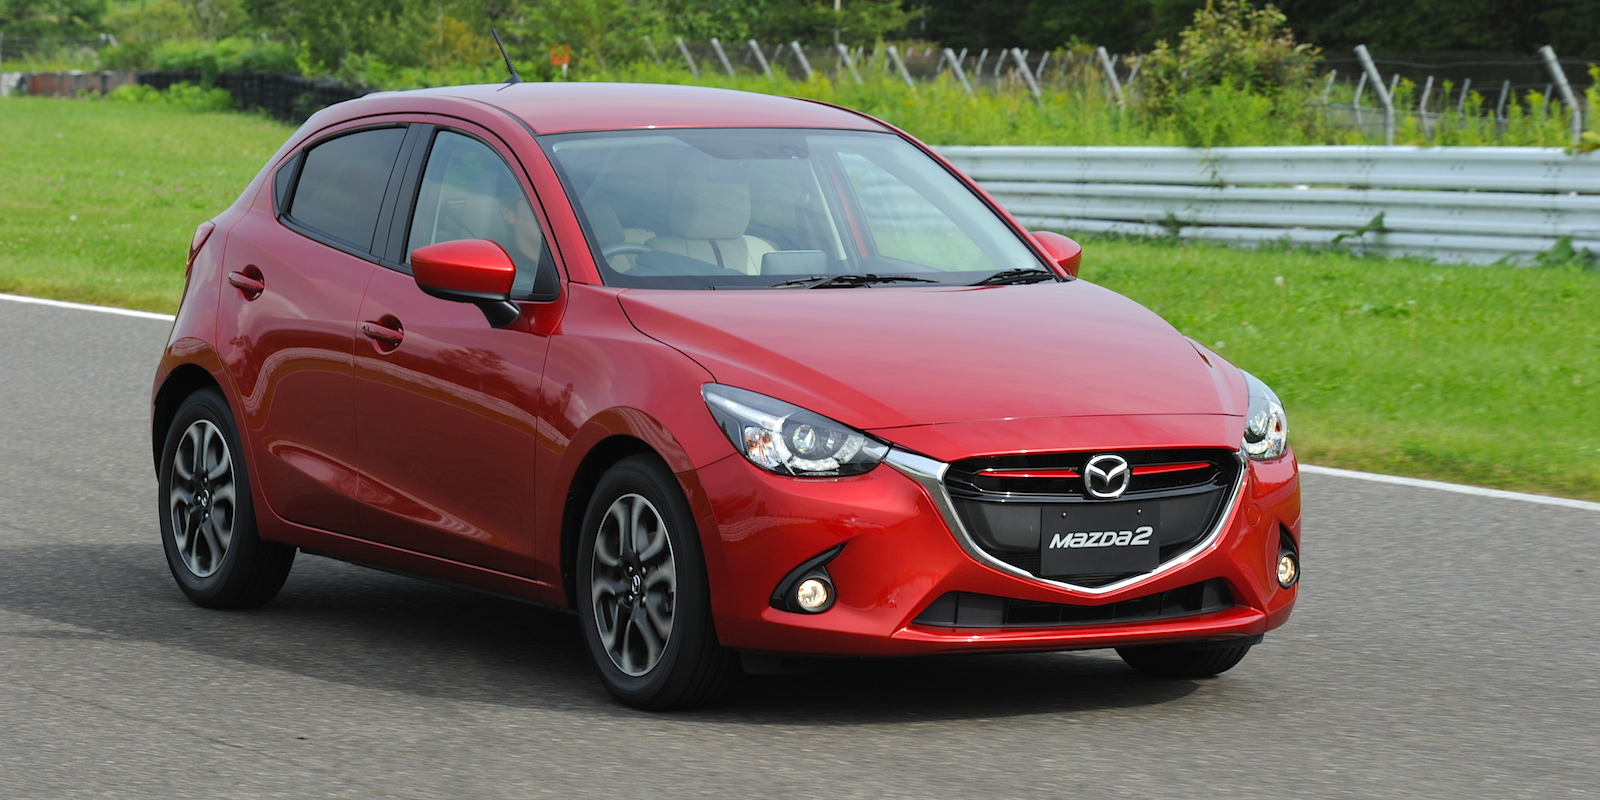 2015 mazda 2 review caradvice. Black Bedroom Furniture Sets. Home Design Ideas